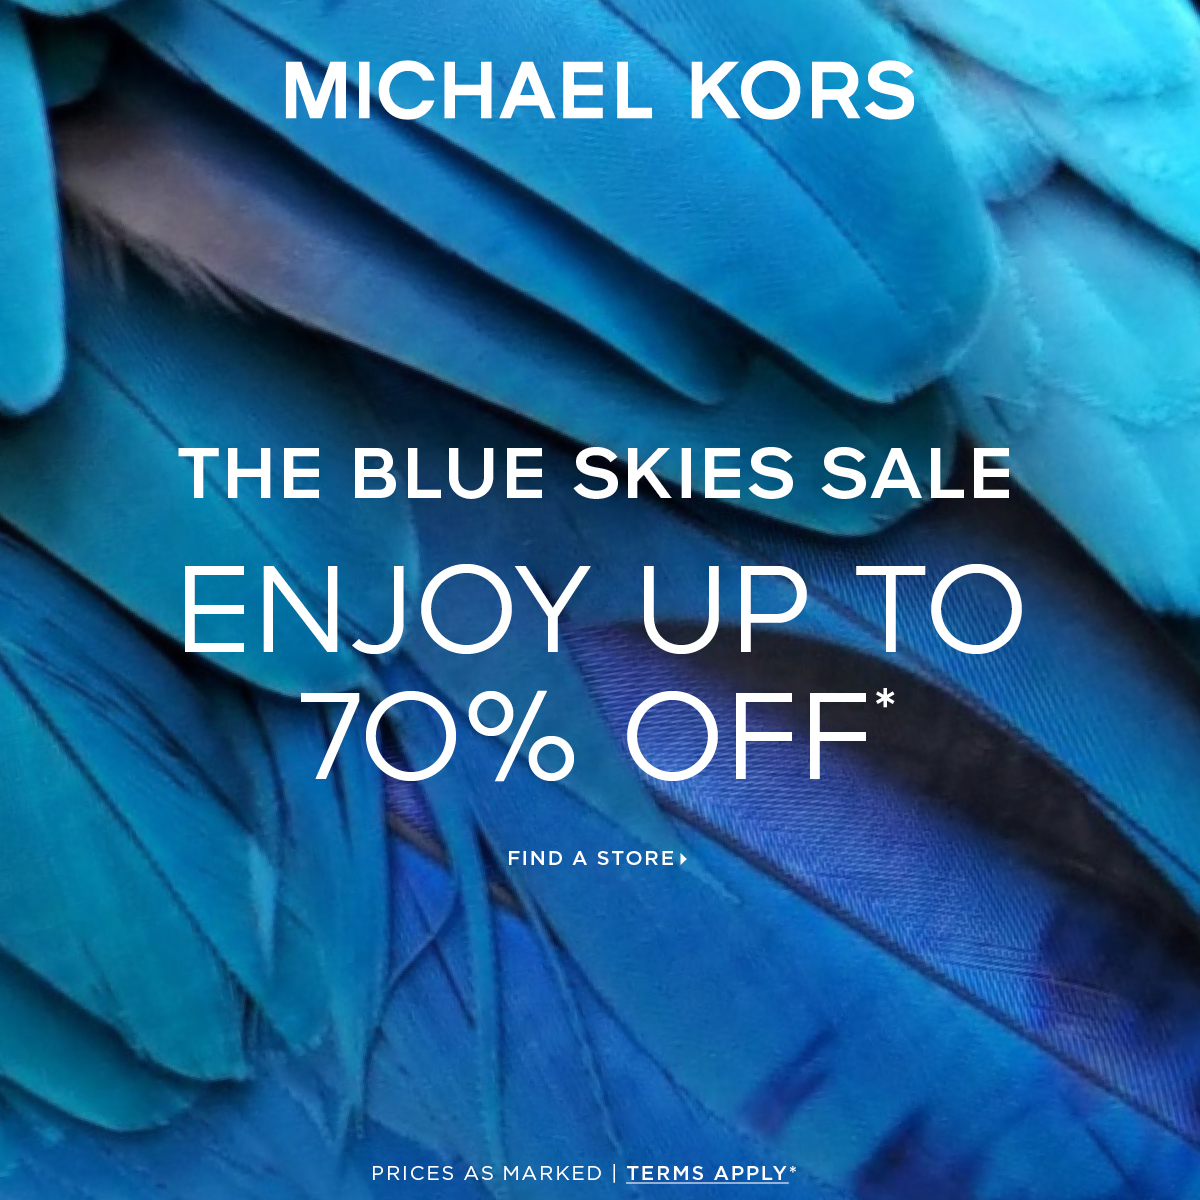 4th of July Sale from Michael Kors